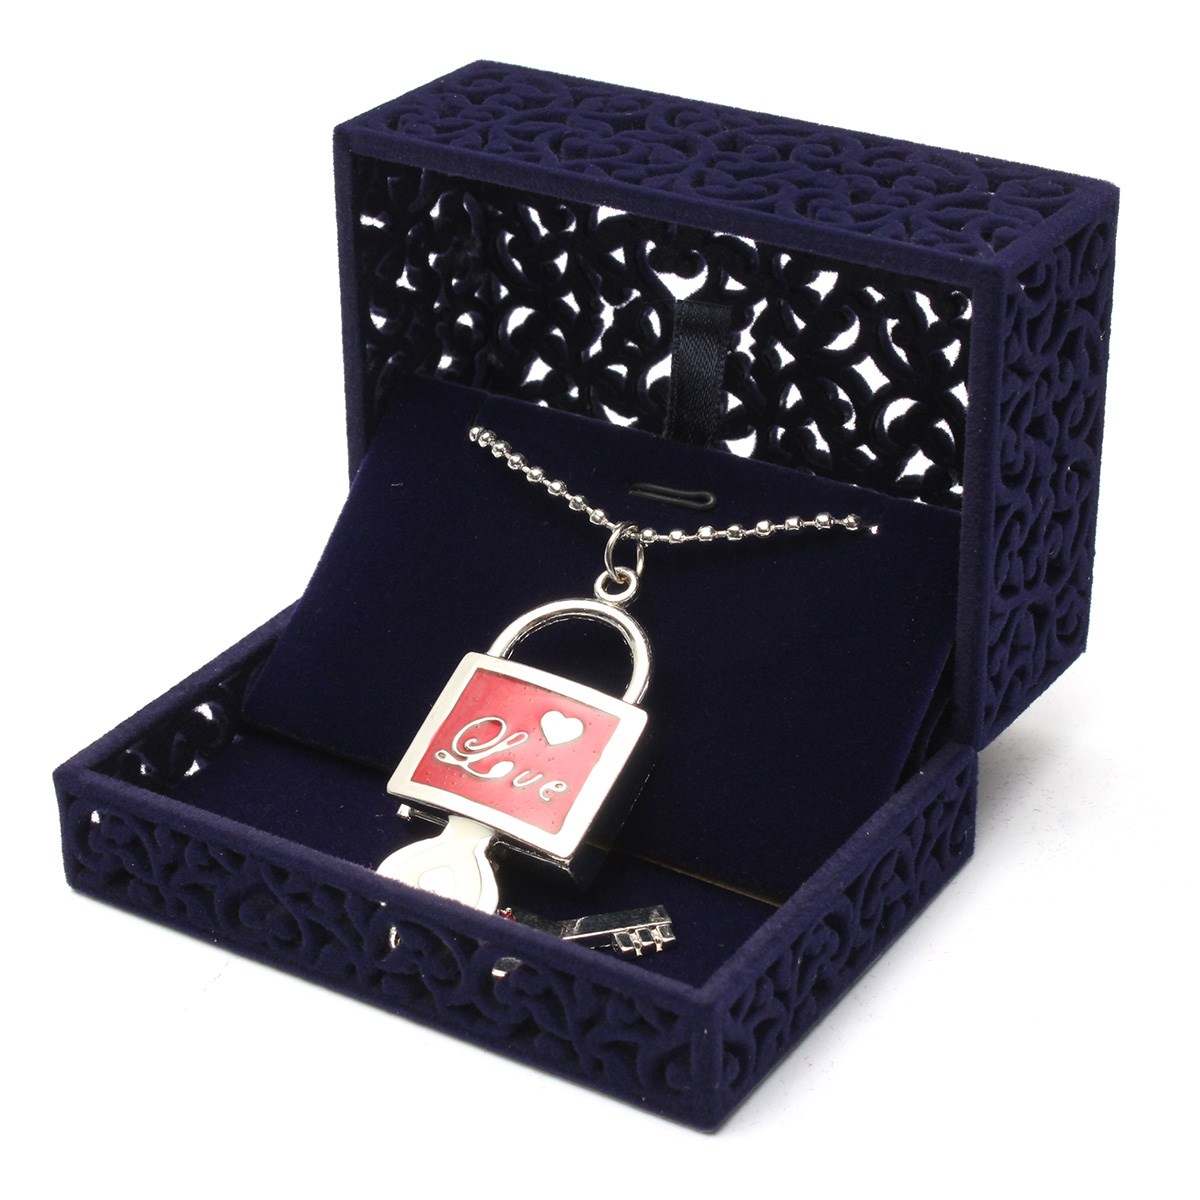 2016 New Velvet Flock Small Necklace Box Hollow Navy Blue Jewellery Case Pendant Holder Display Box Gift(China (Mainland))